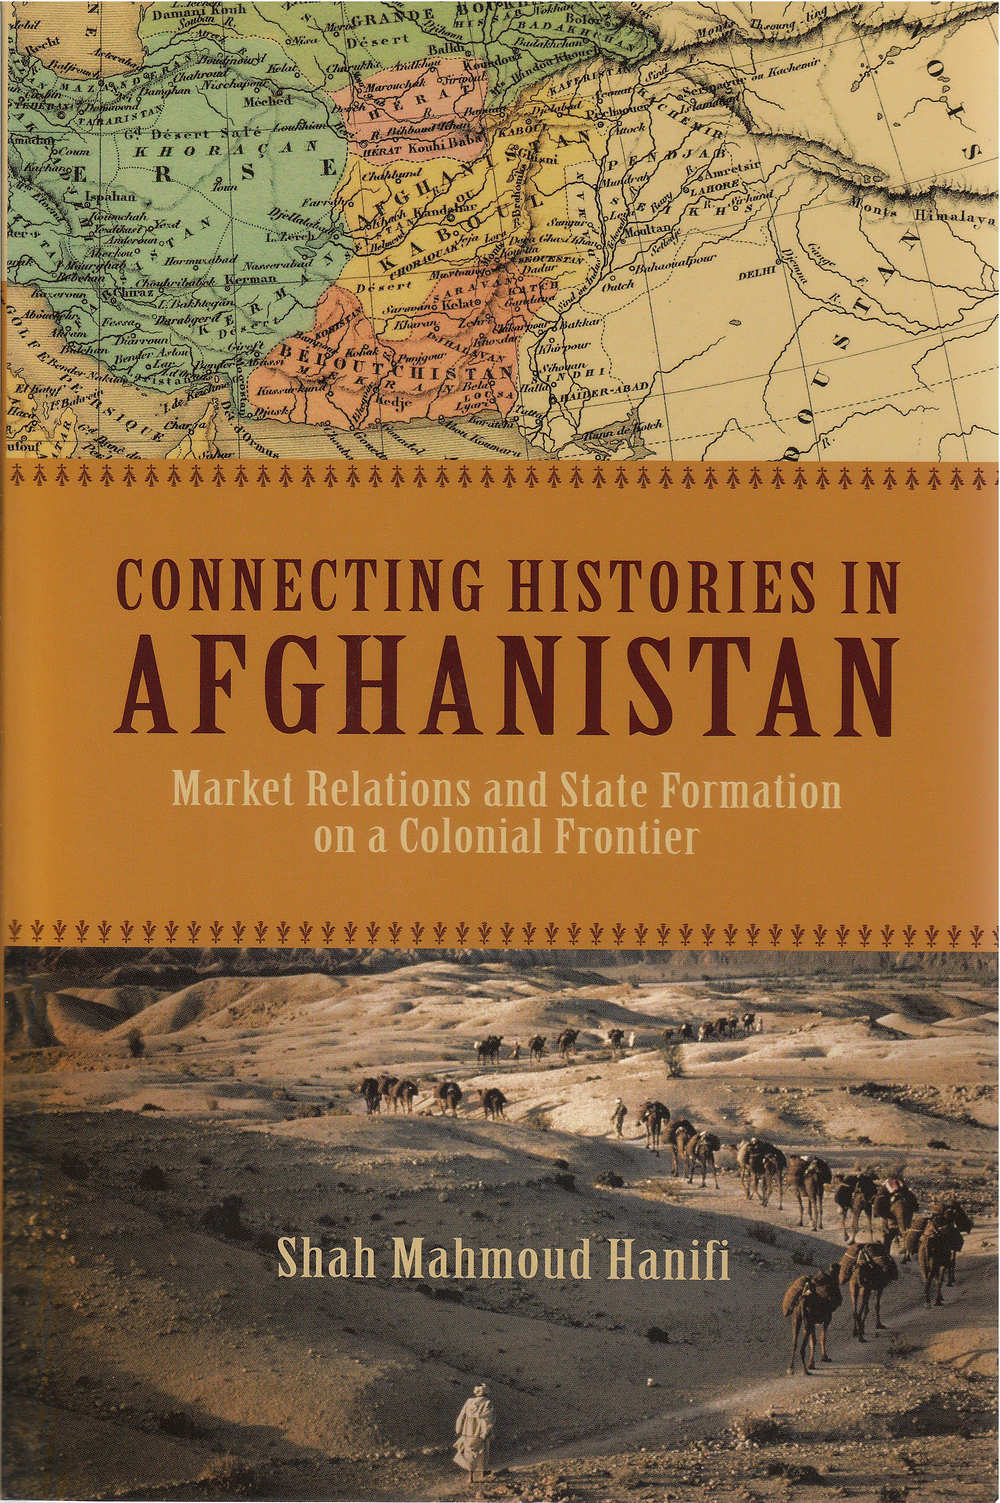 connecting histories in afghanistan, market relations and state formation on a colonial frontier, shah mahmoud hanifi